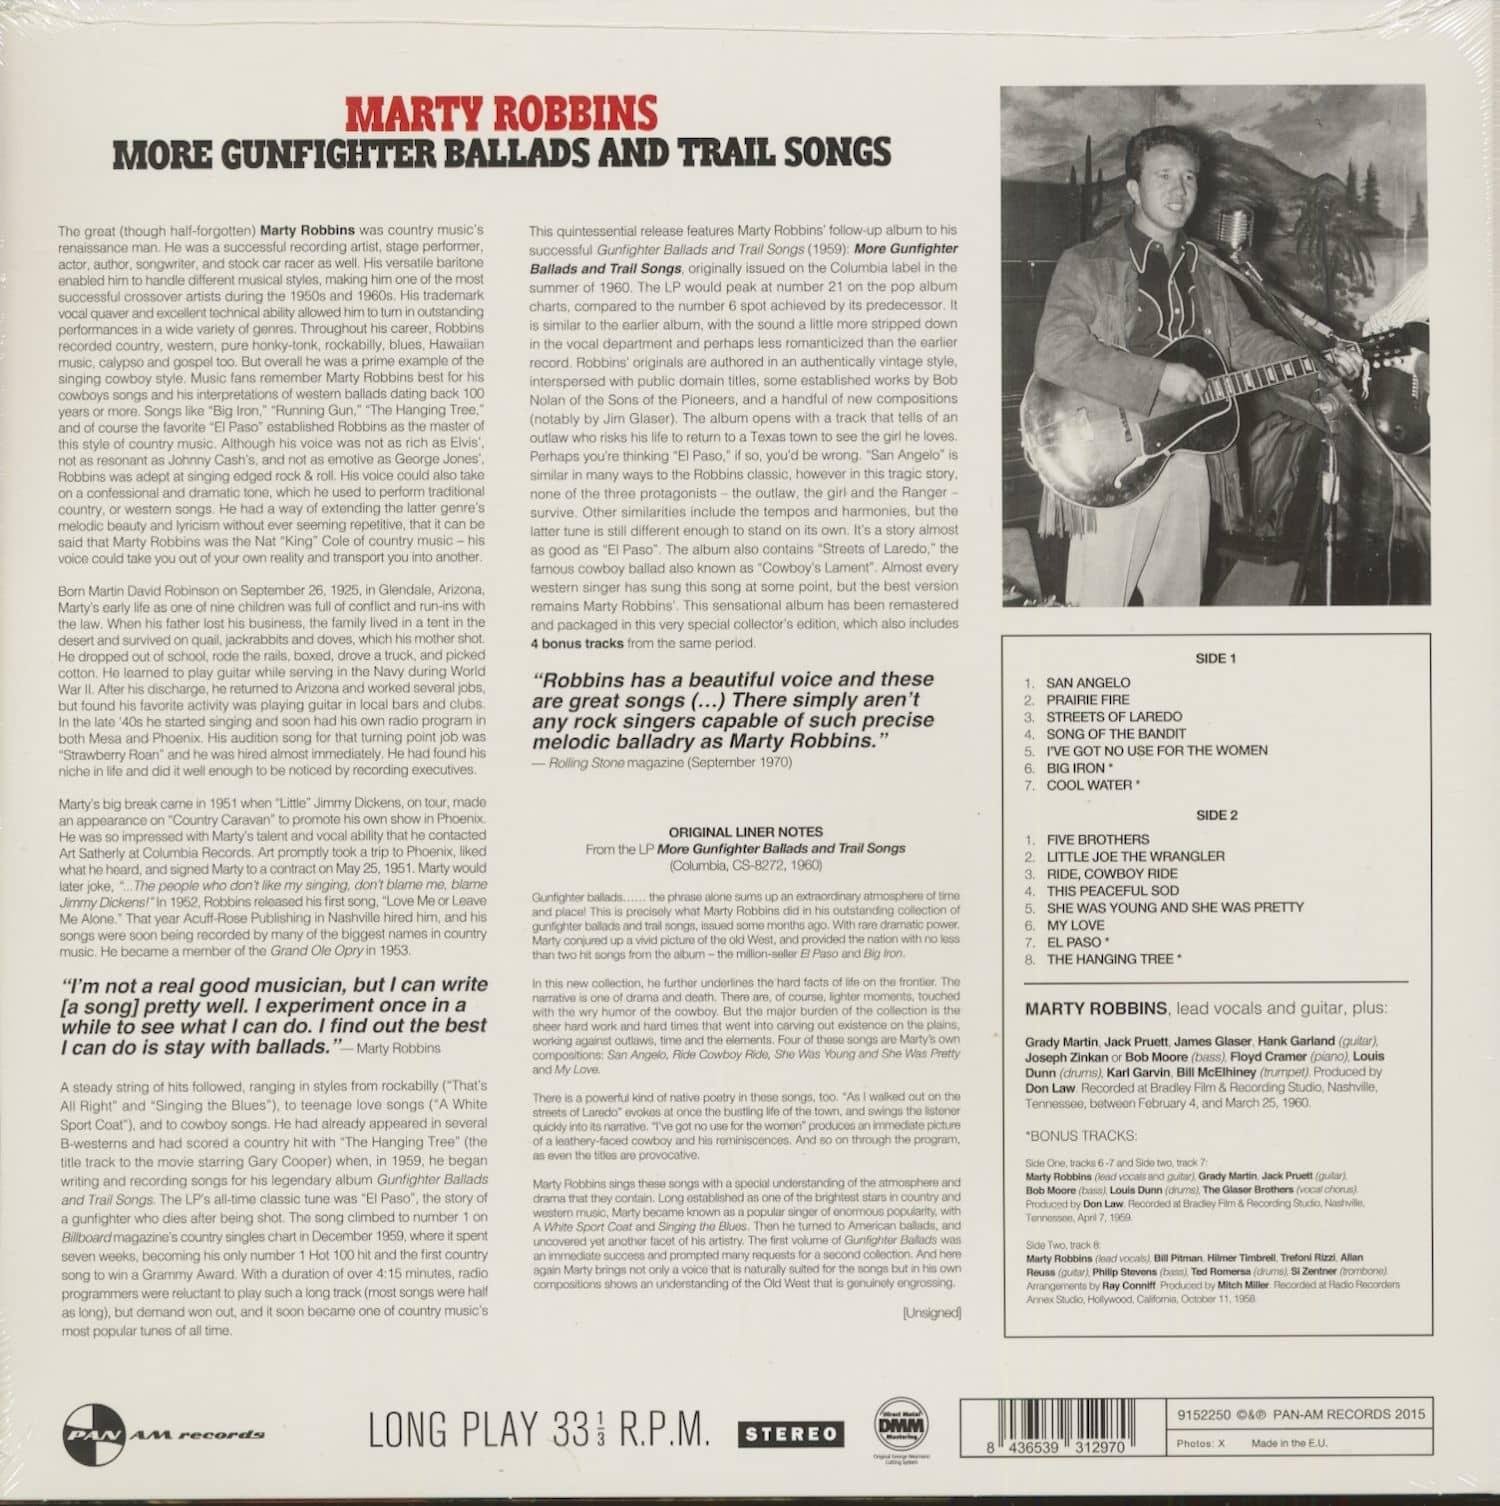 Marty Robbins More Gunfighter Ballads And Trail Songs (LP, 180g Vinyl)